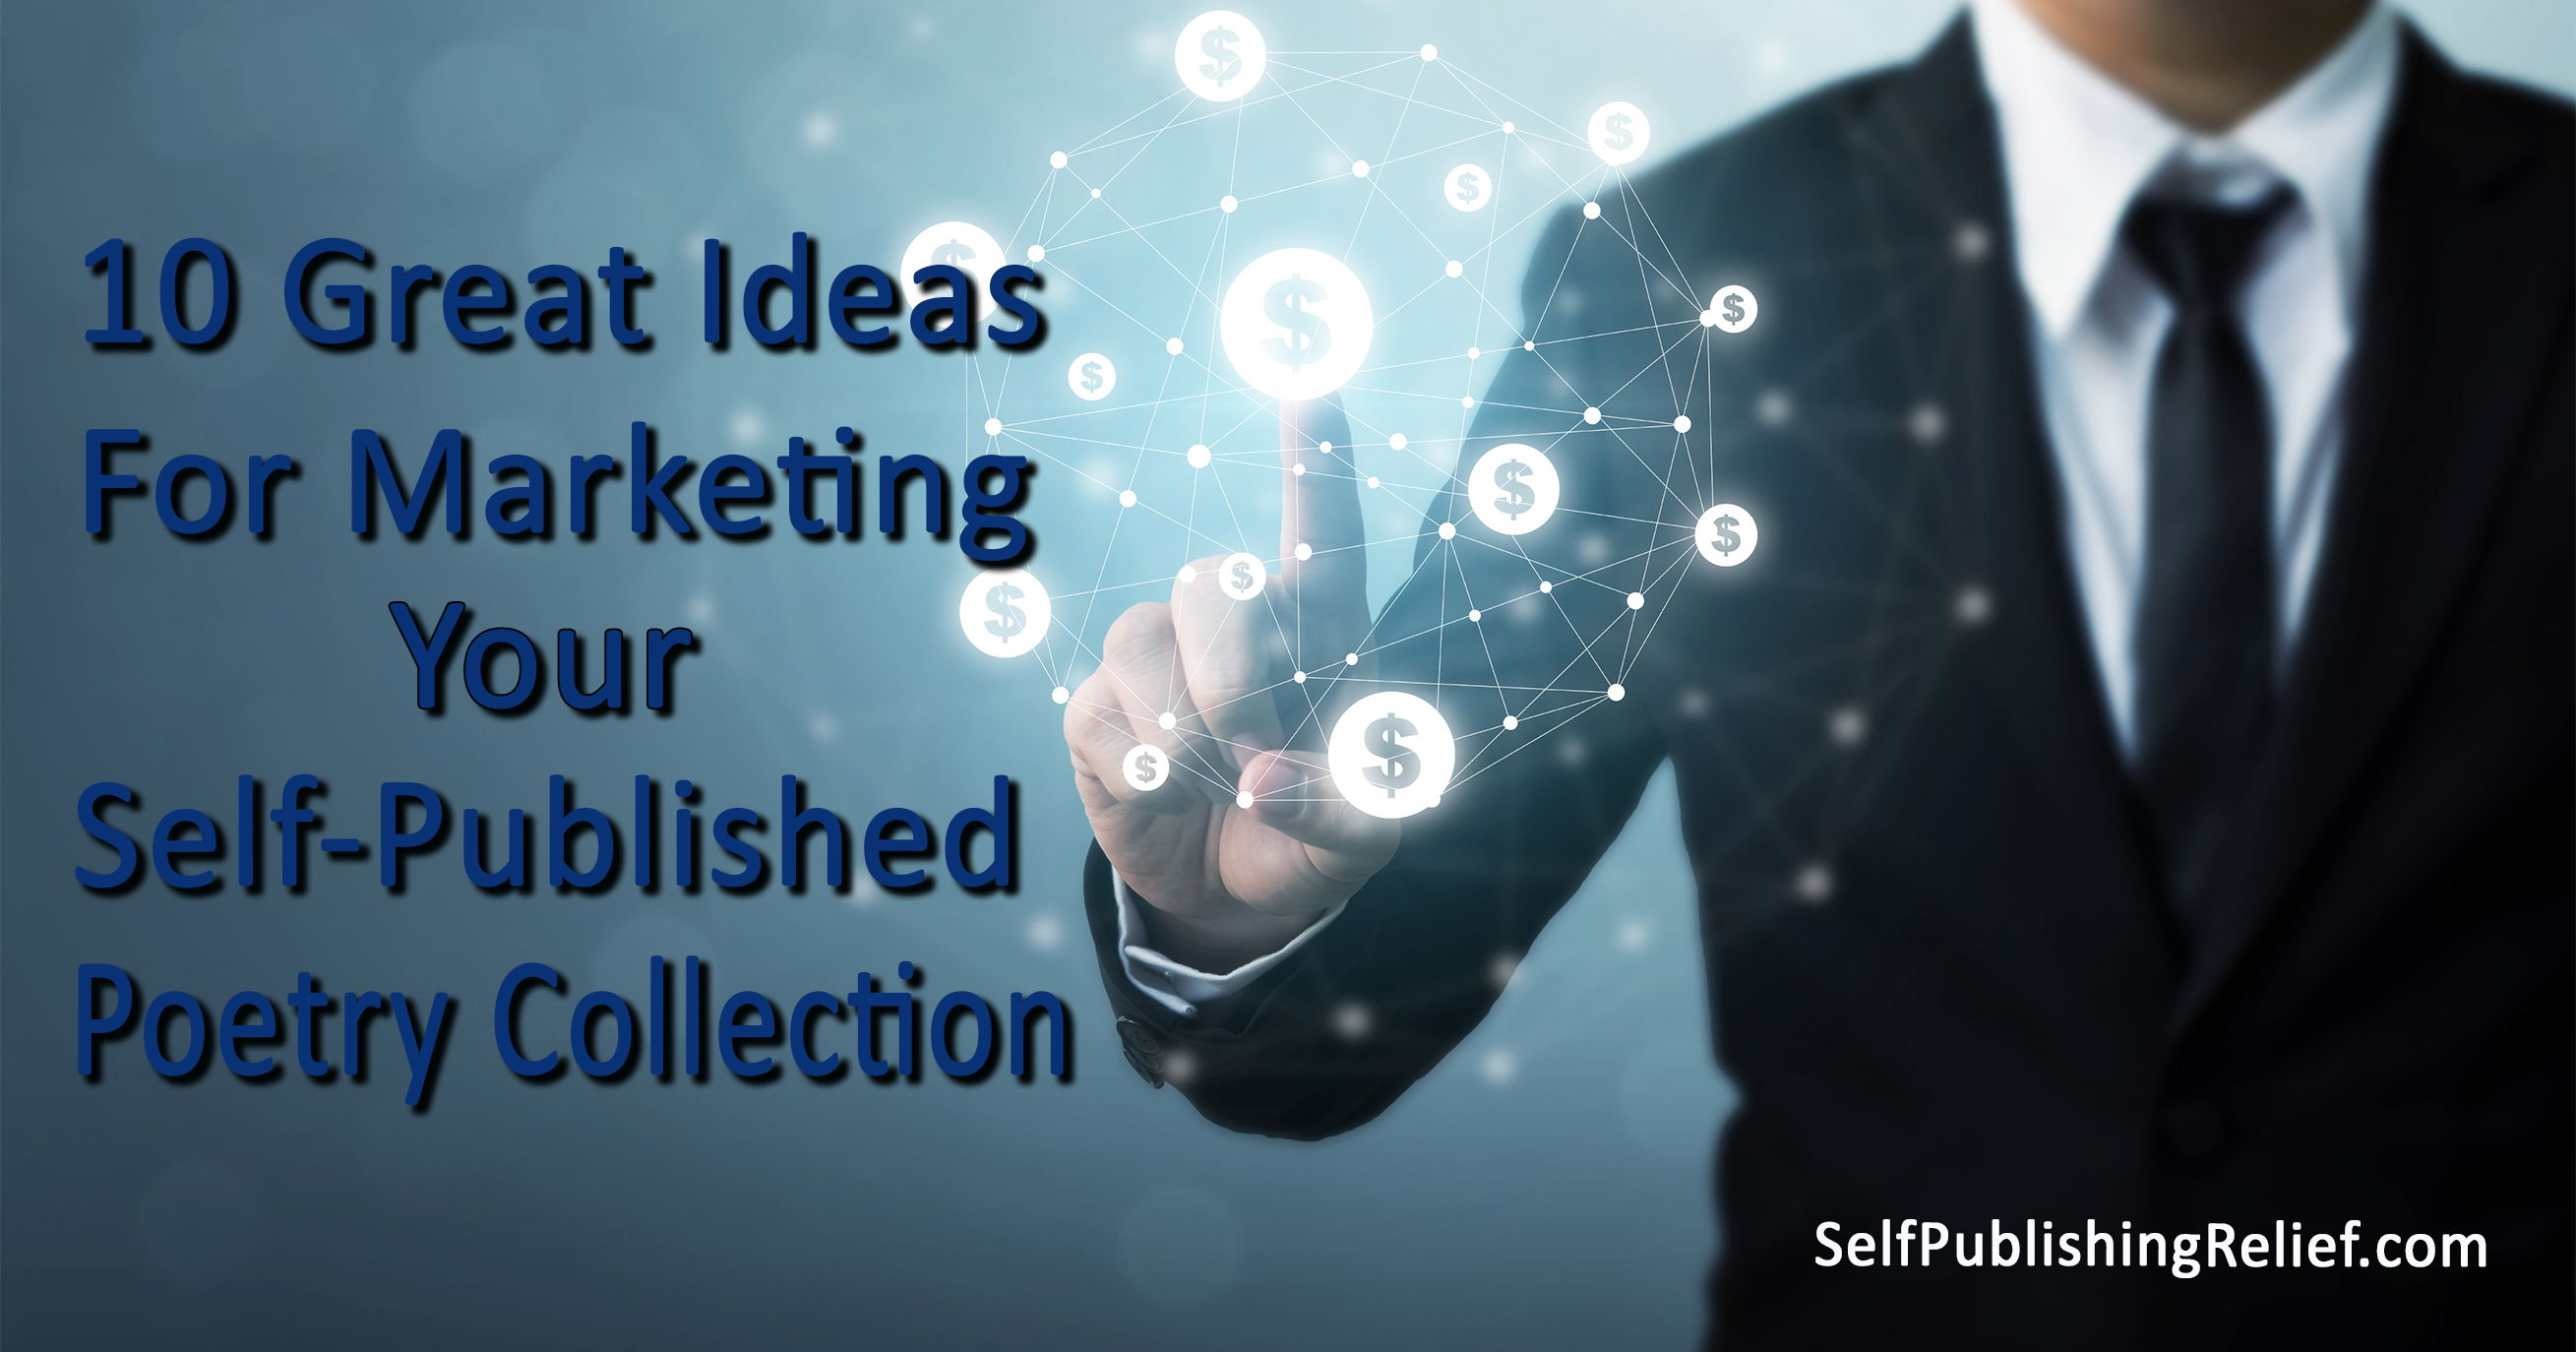 10 Great Ideas For Marketing Your Self-Published Poetry Collection | Self-Publishing Relief